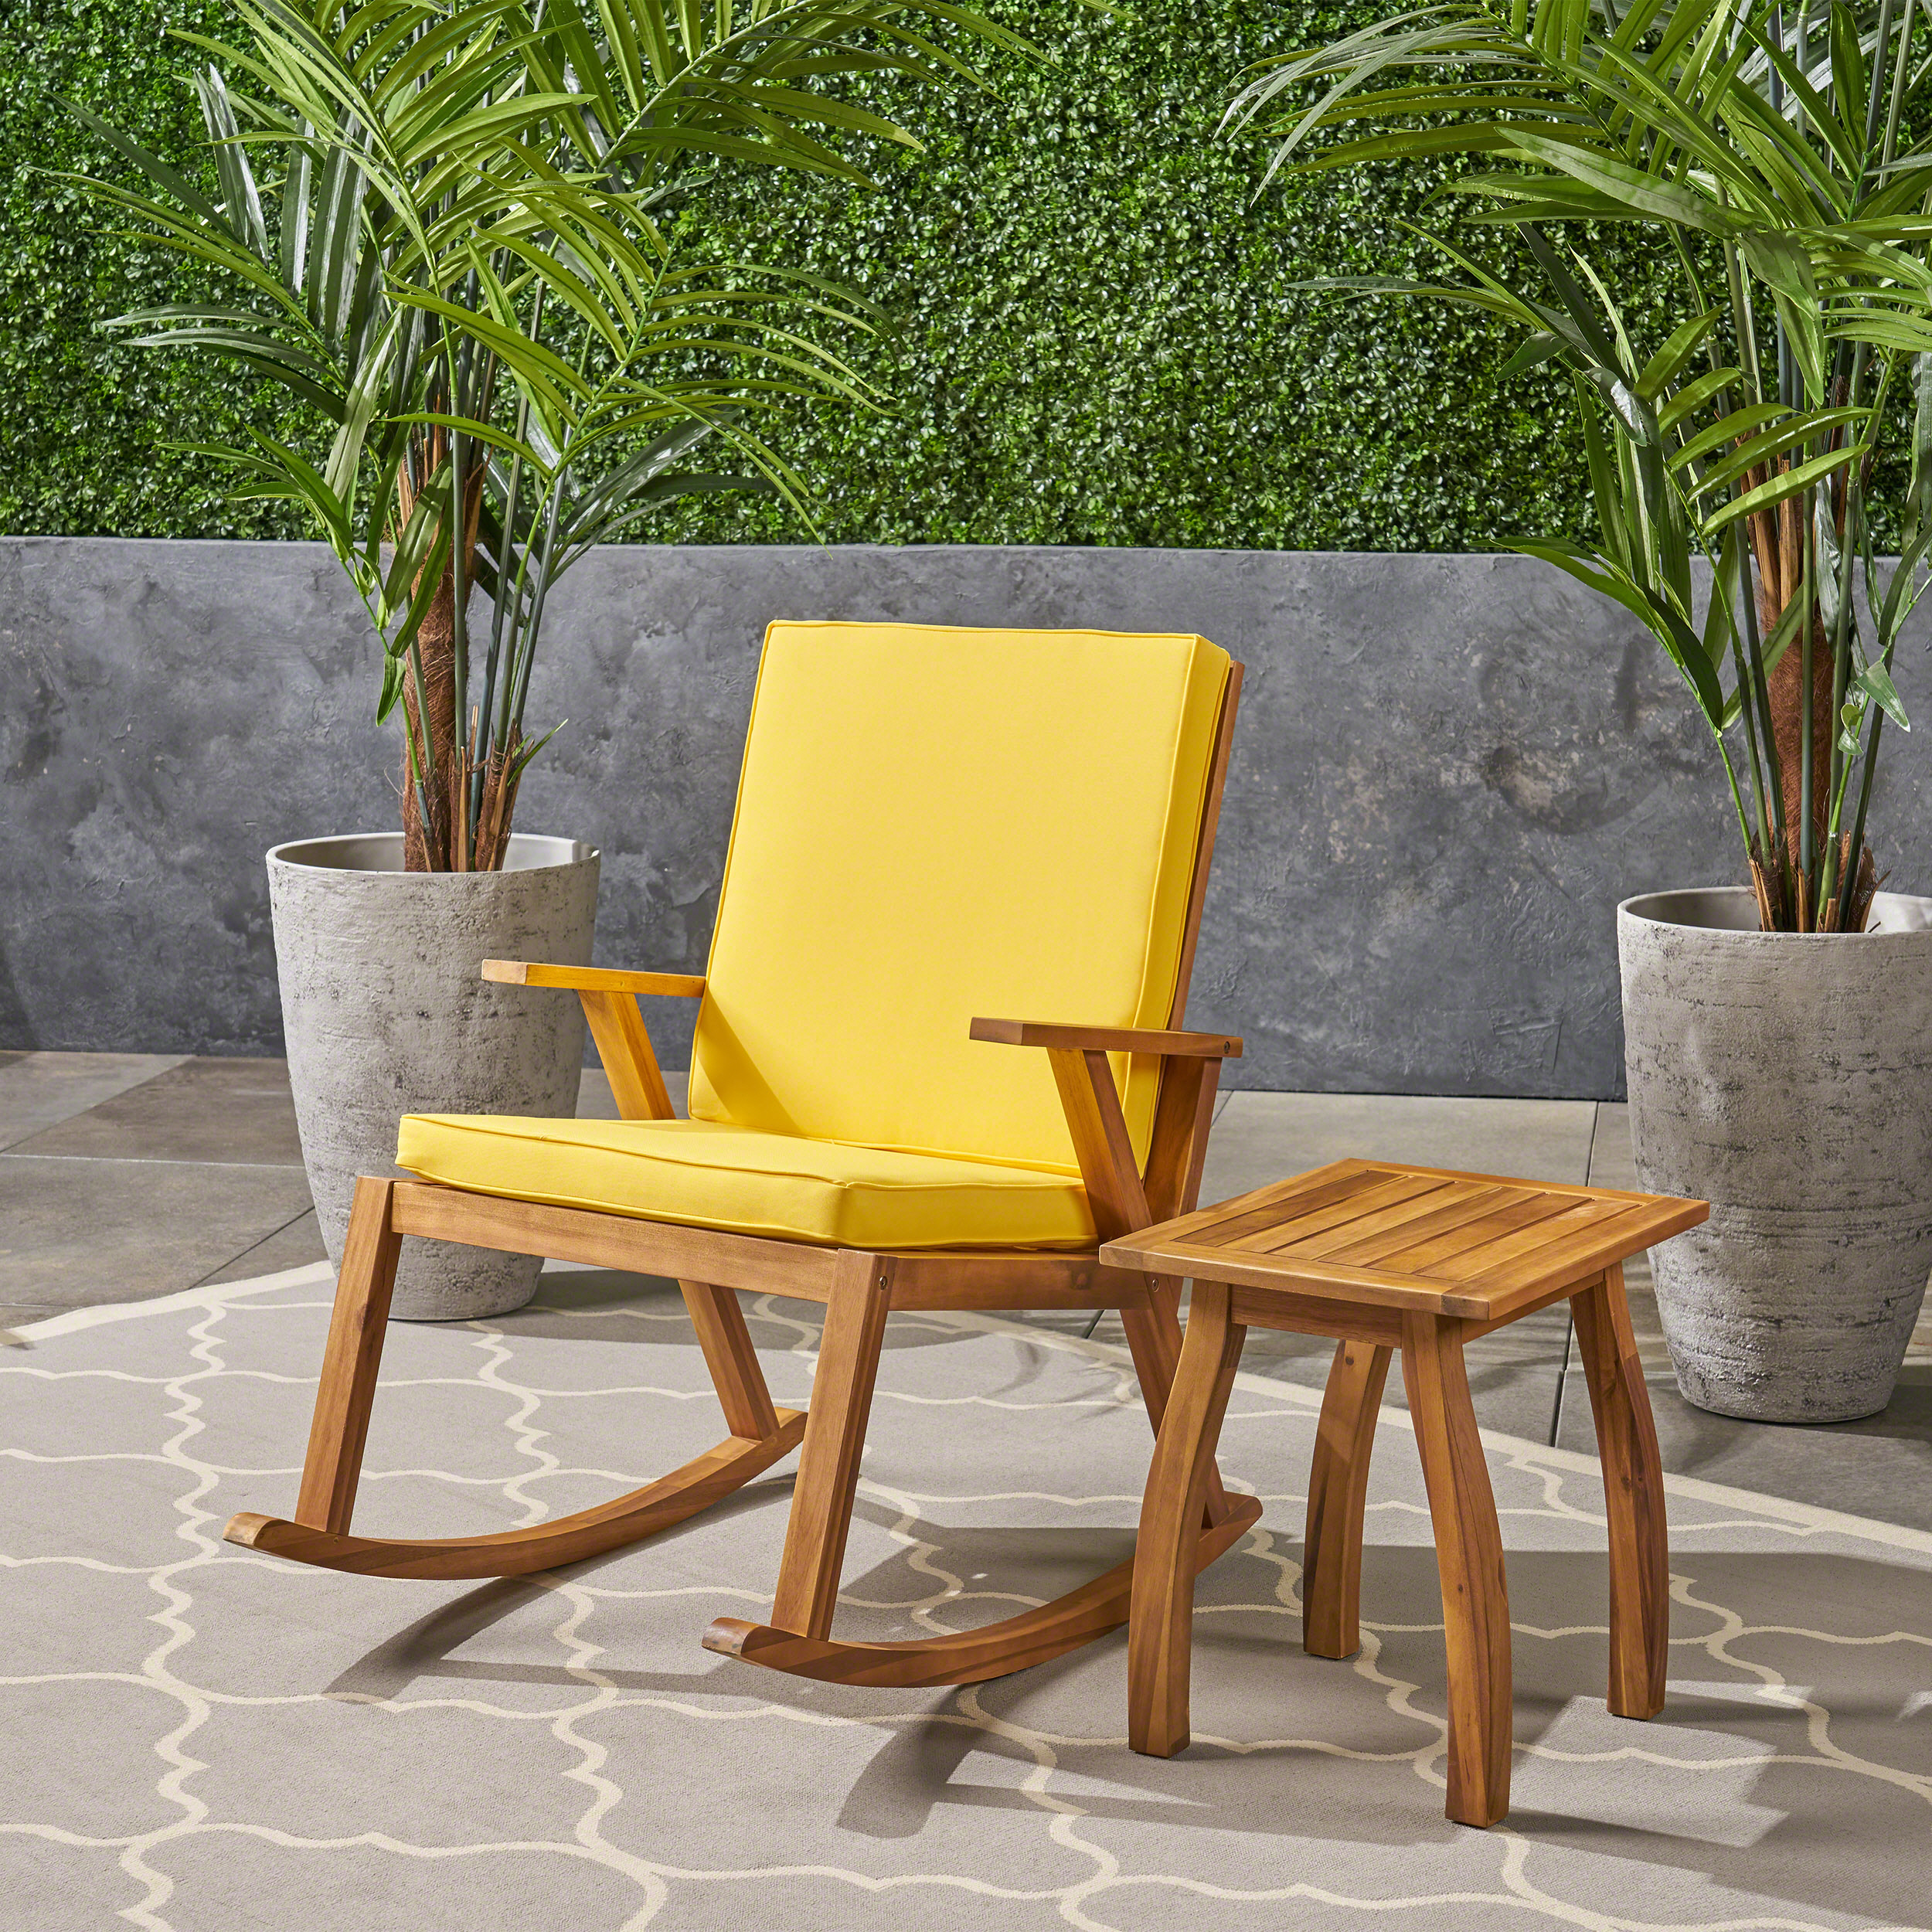 Alize Outdoor Acacia Wood Rocking Chair and Table Set, Teak, Yellow